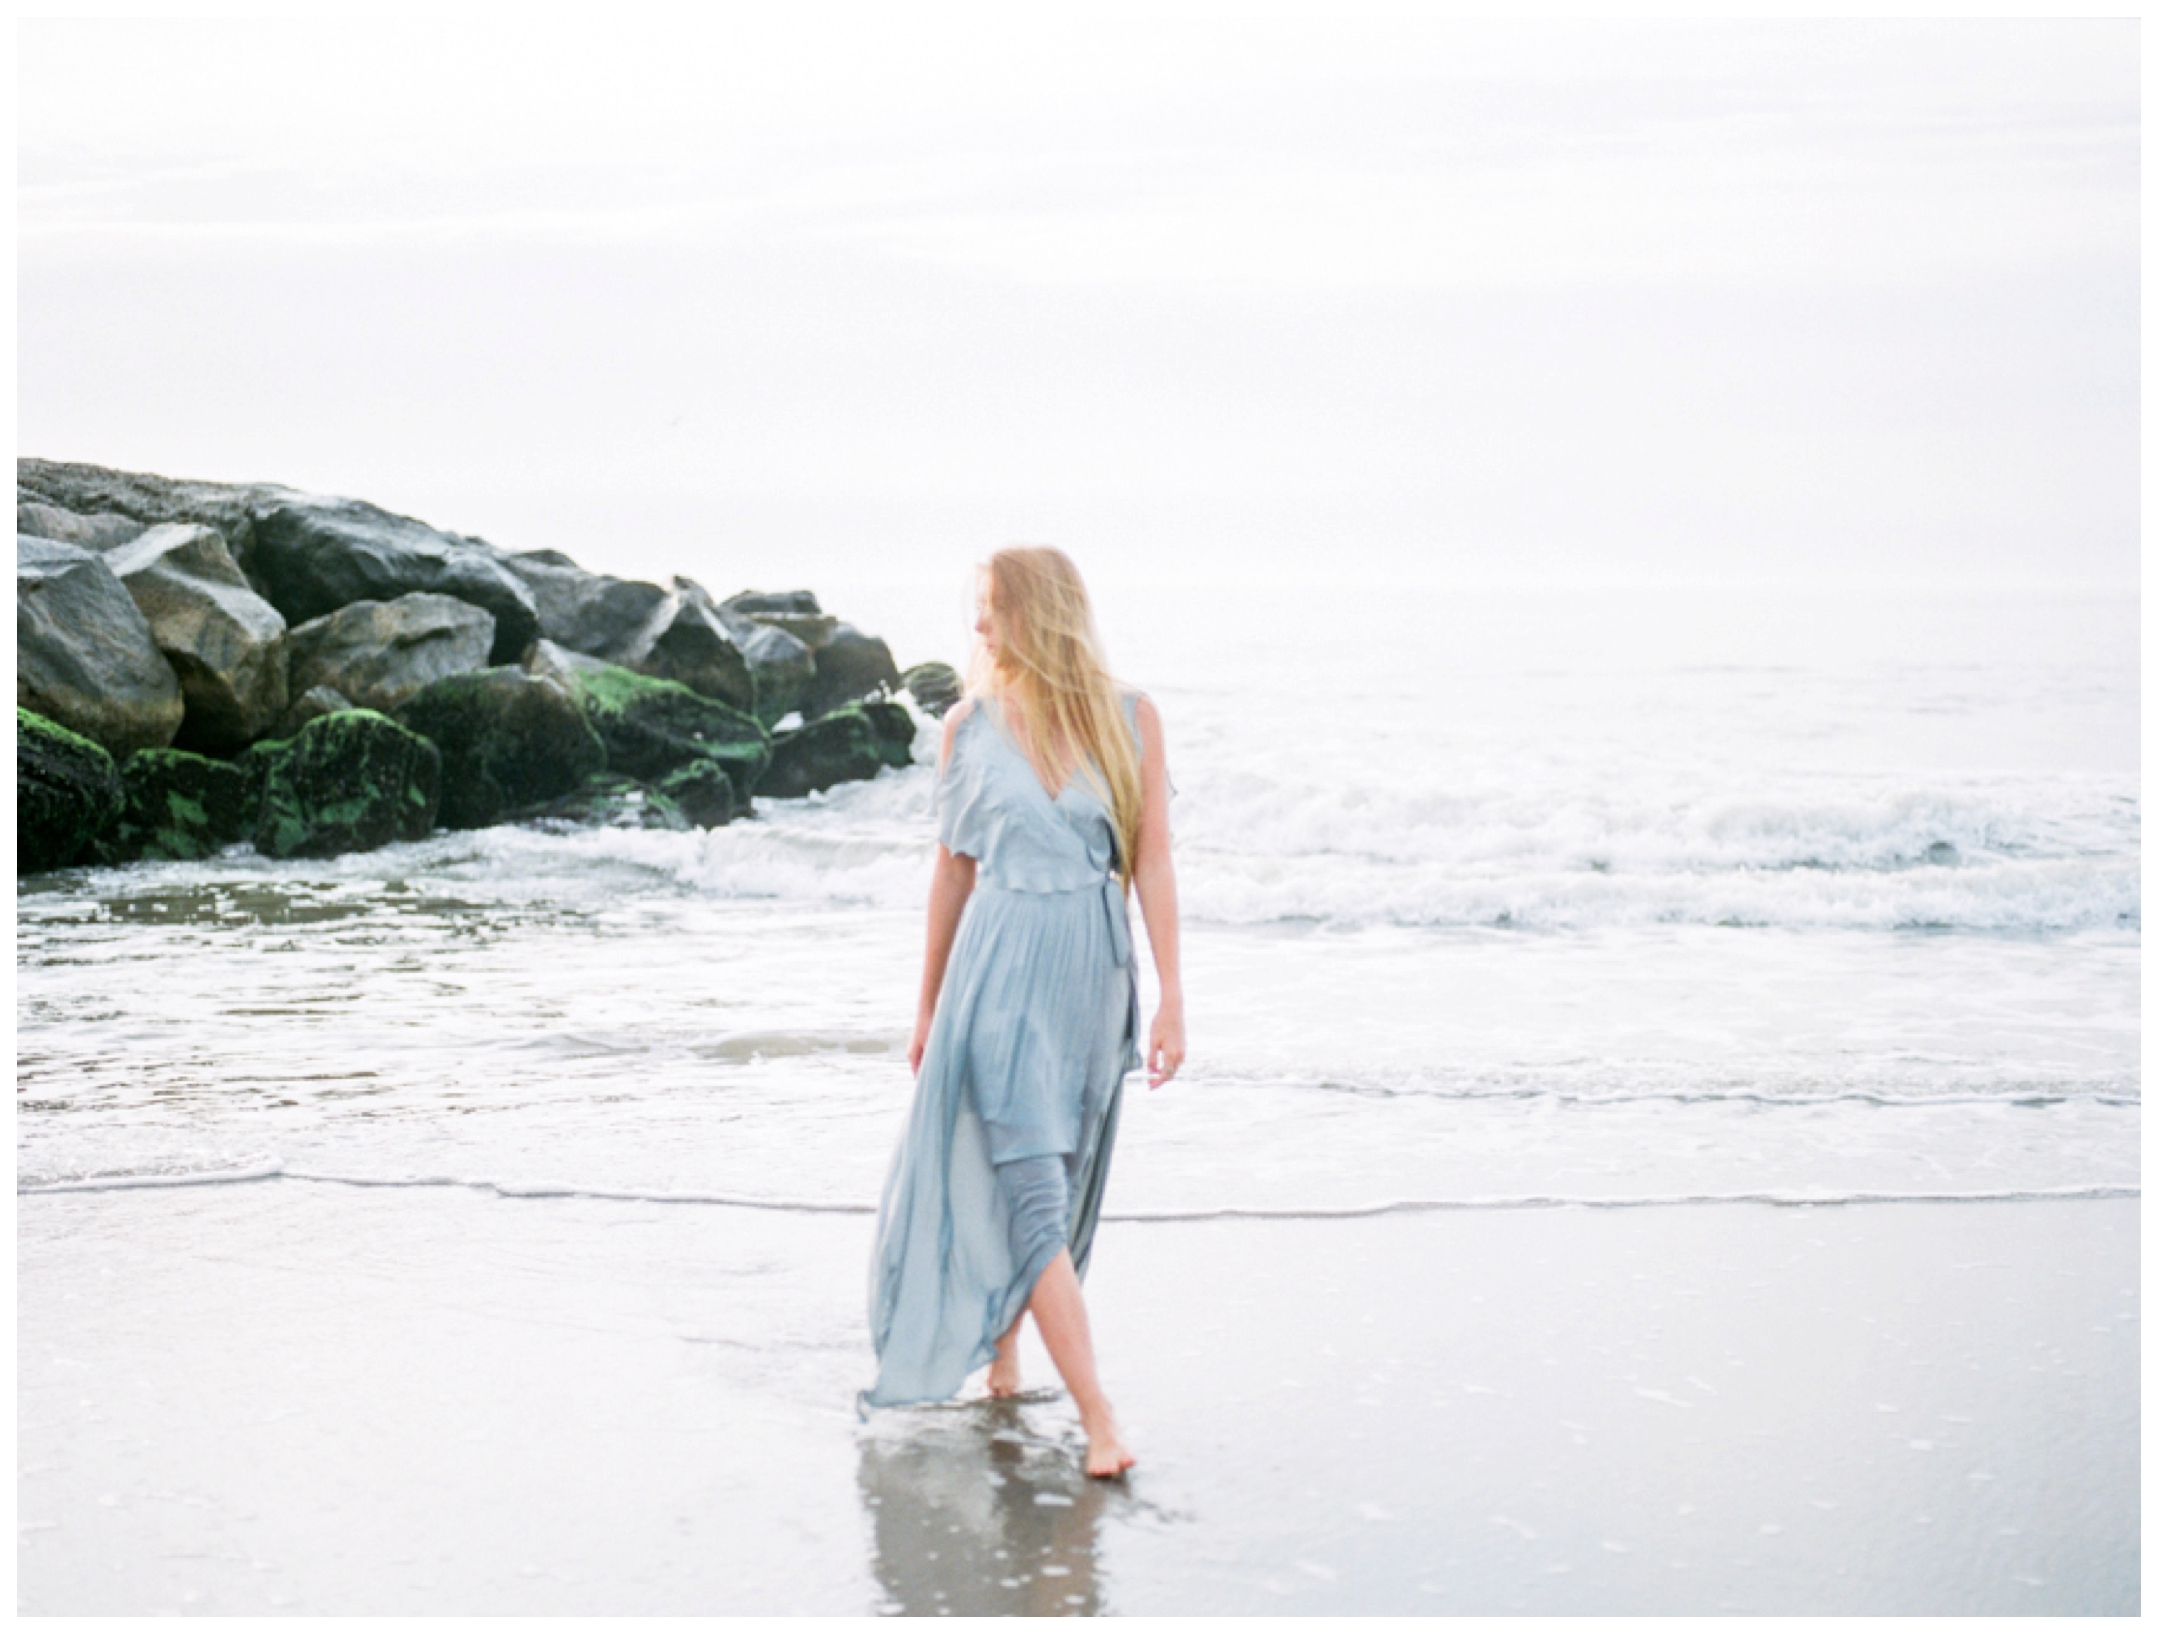 sunrise beach beauty session in avalon new jersey by fine art wedding photographer lissa ryan photography